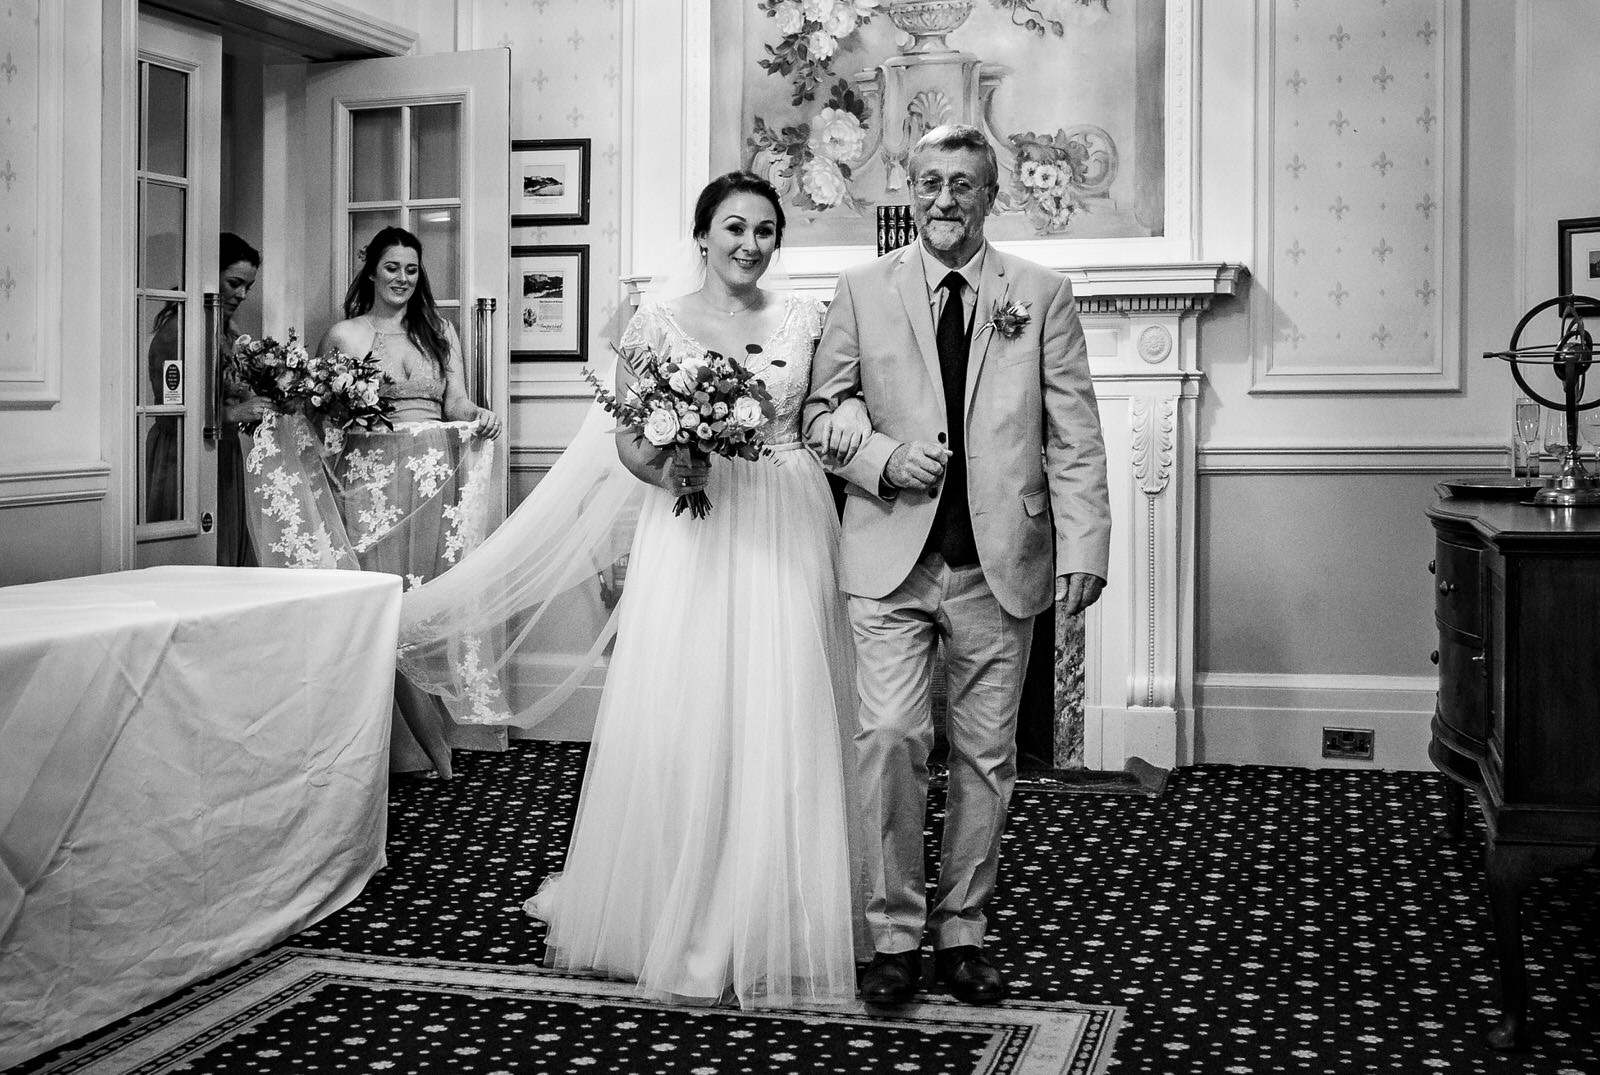 Gabi & Matt's Wedding, Torquay wedding photographer